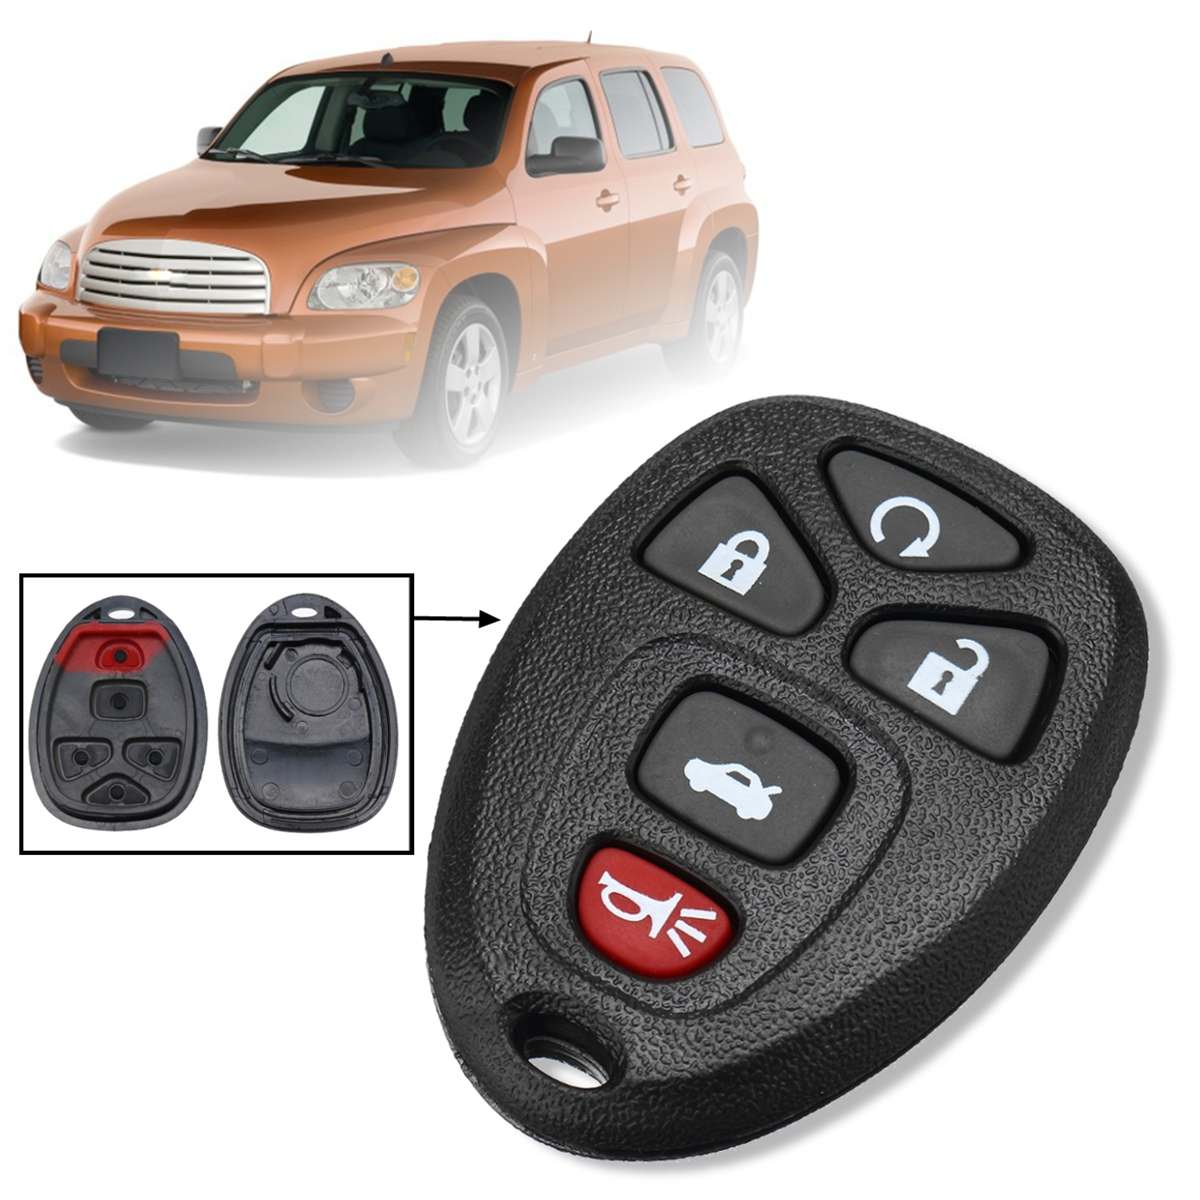 5 Buttons Remote Key Shell Keyless Fob Case Rubber Pad Alarm Remote Start Replacement for Buick Lucerne Cadillac DTS Chevrolet Impala Monte Carlo Black